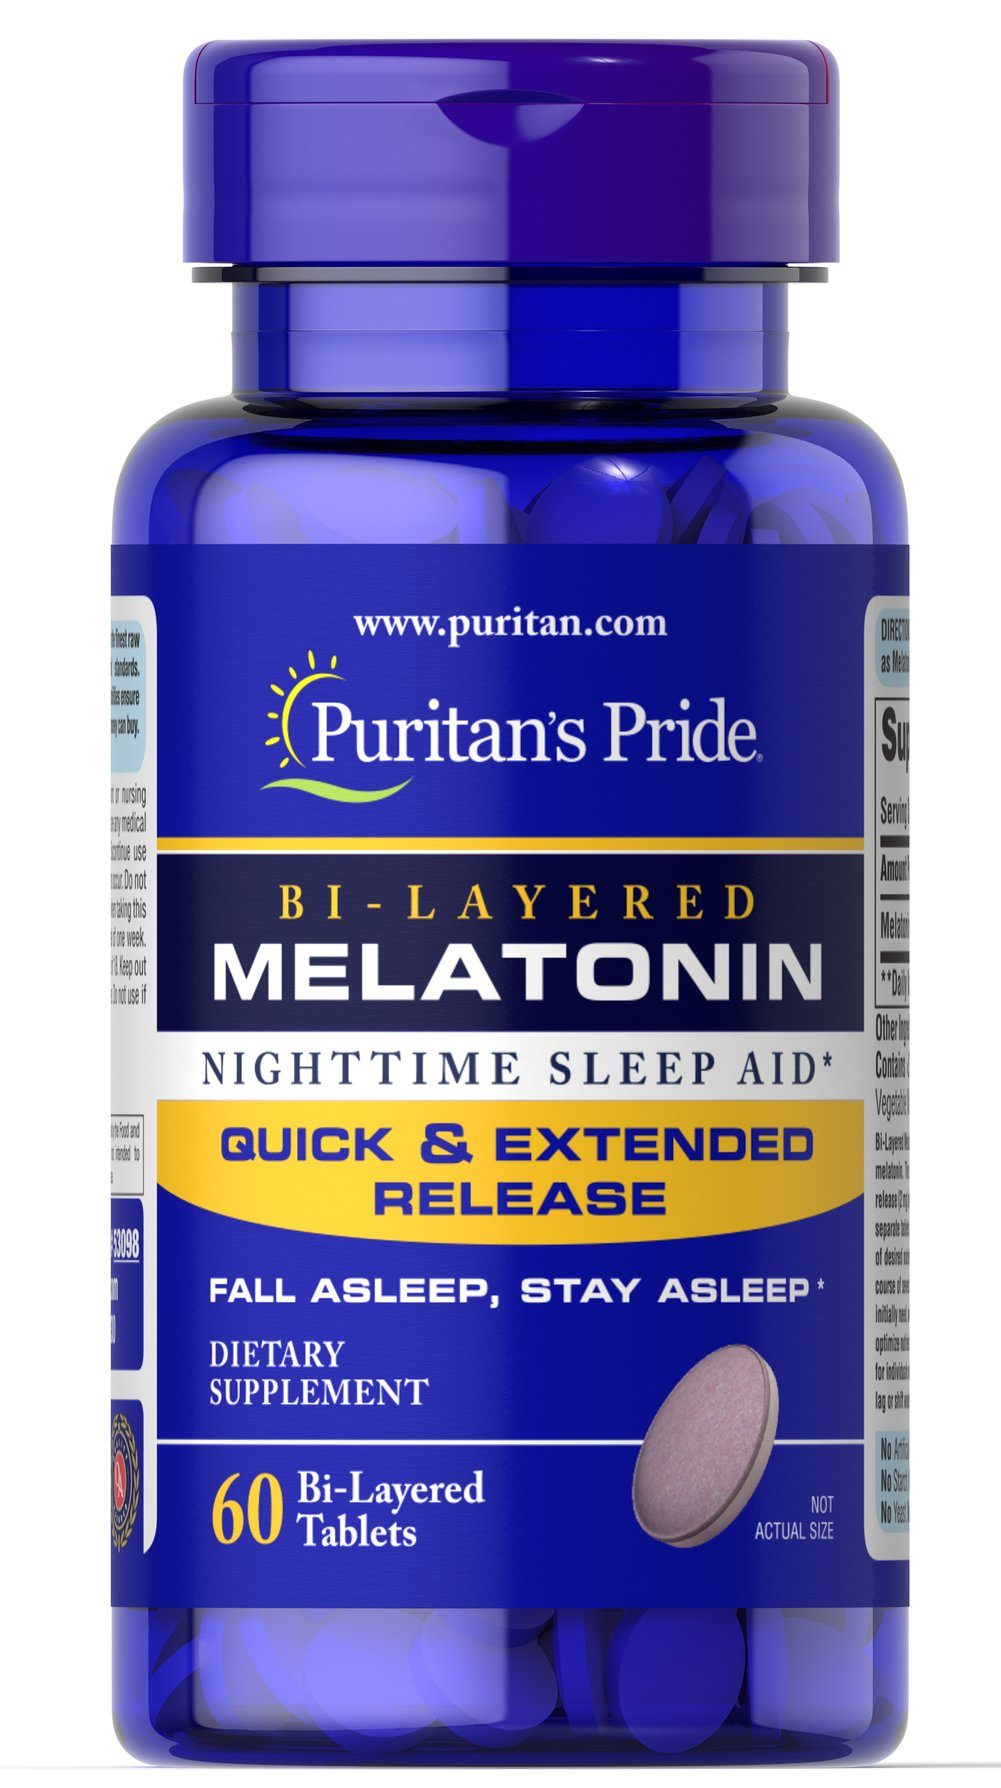 Bi-Layered Melatonin 5 mg